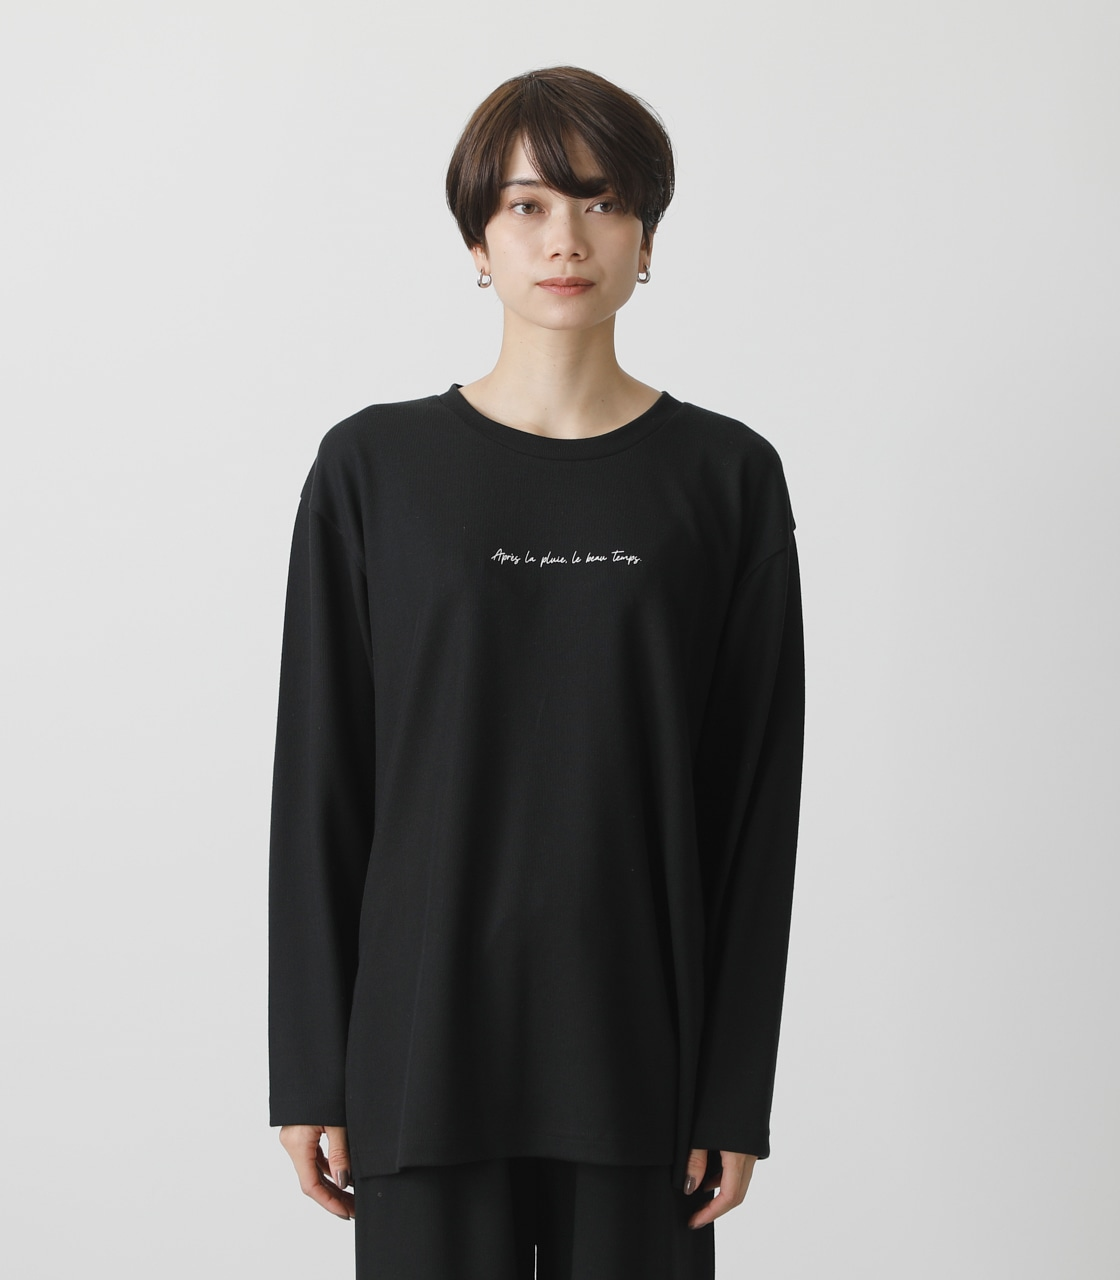 T/H PRINT LONG TEE/T/HプリントロングTシャツ 詳細画像 BLK 5